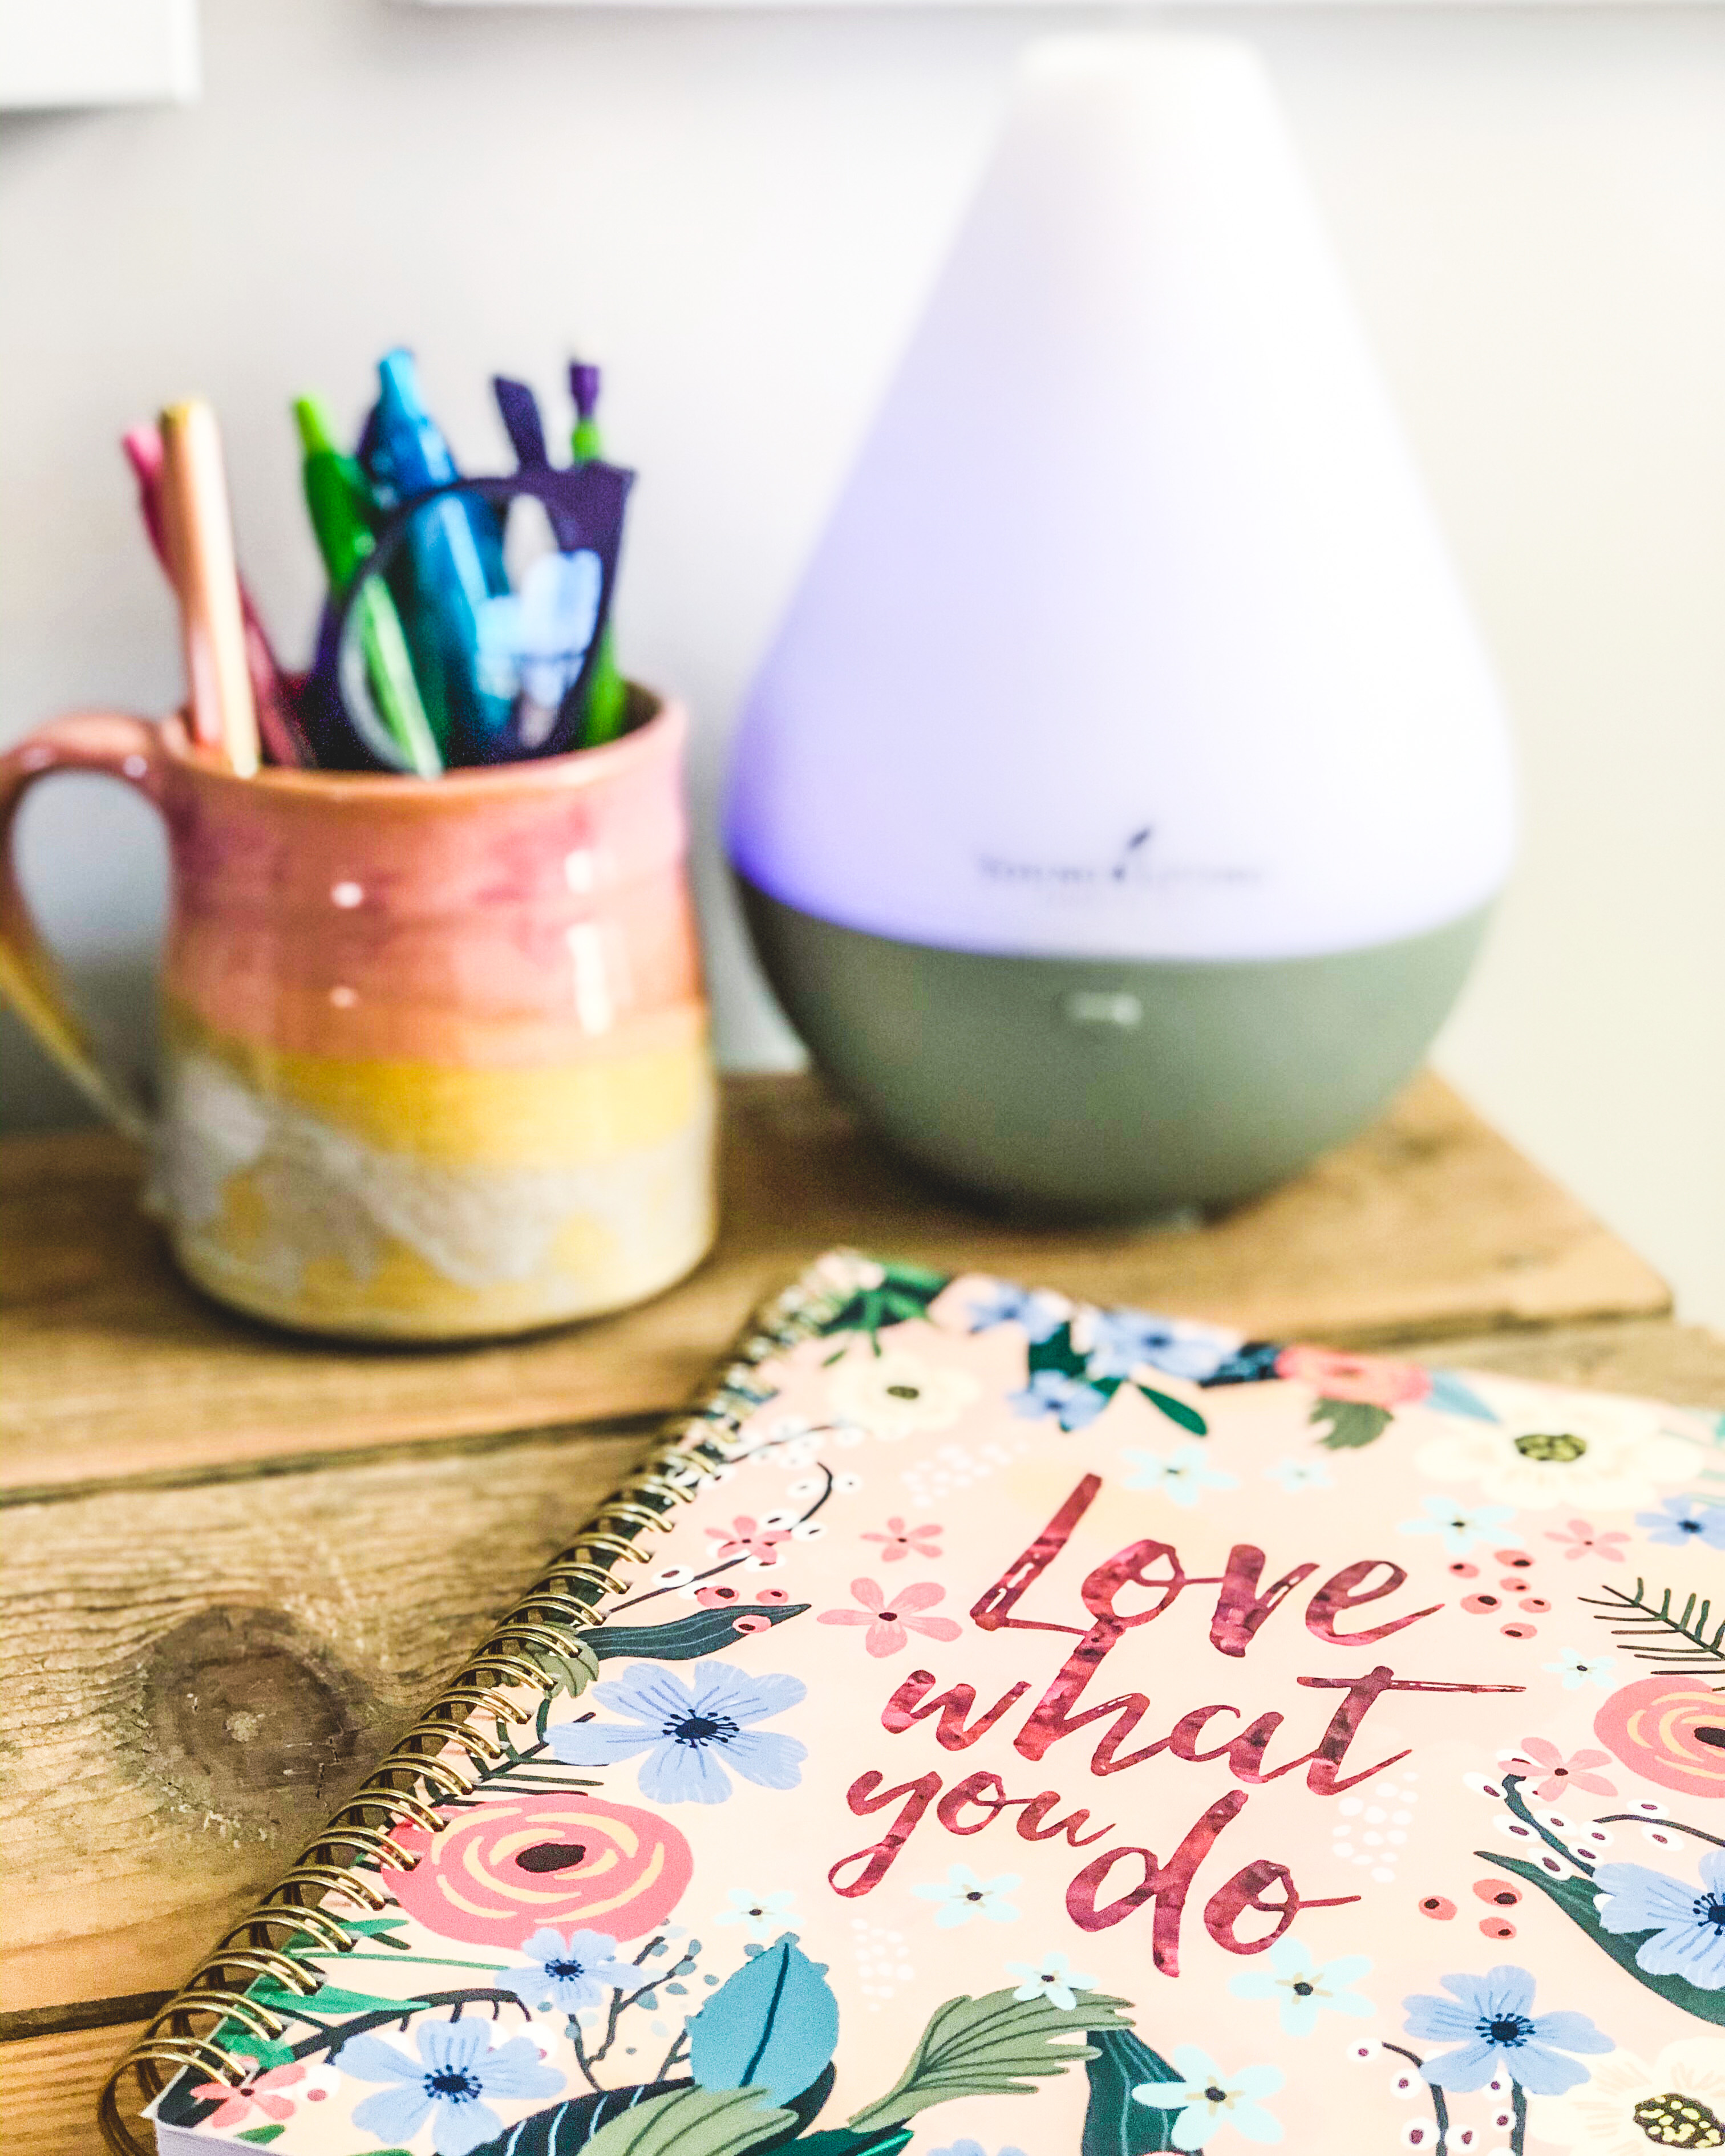 Shaw Avenue Blog by Jenn Pennell. Lifestyle, affordable fashion, family of 5 travel, Young Living Essential Oils, Longaberger Baskets, Dresden & Company.